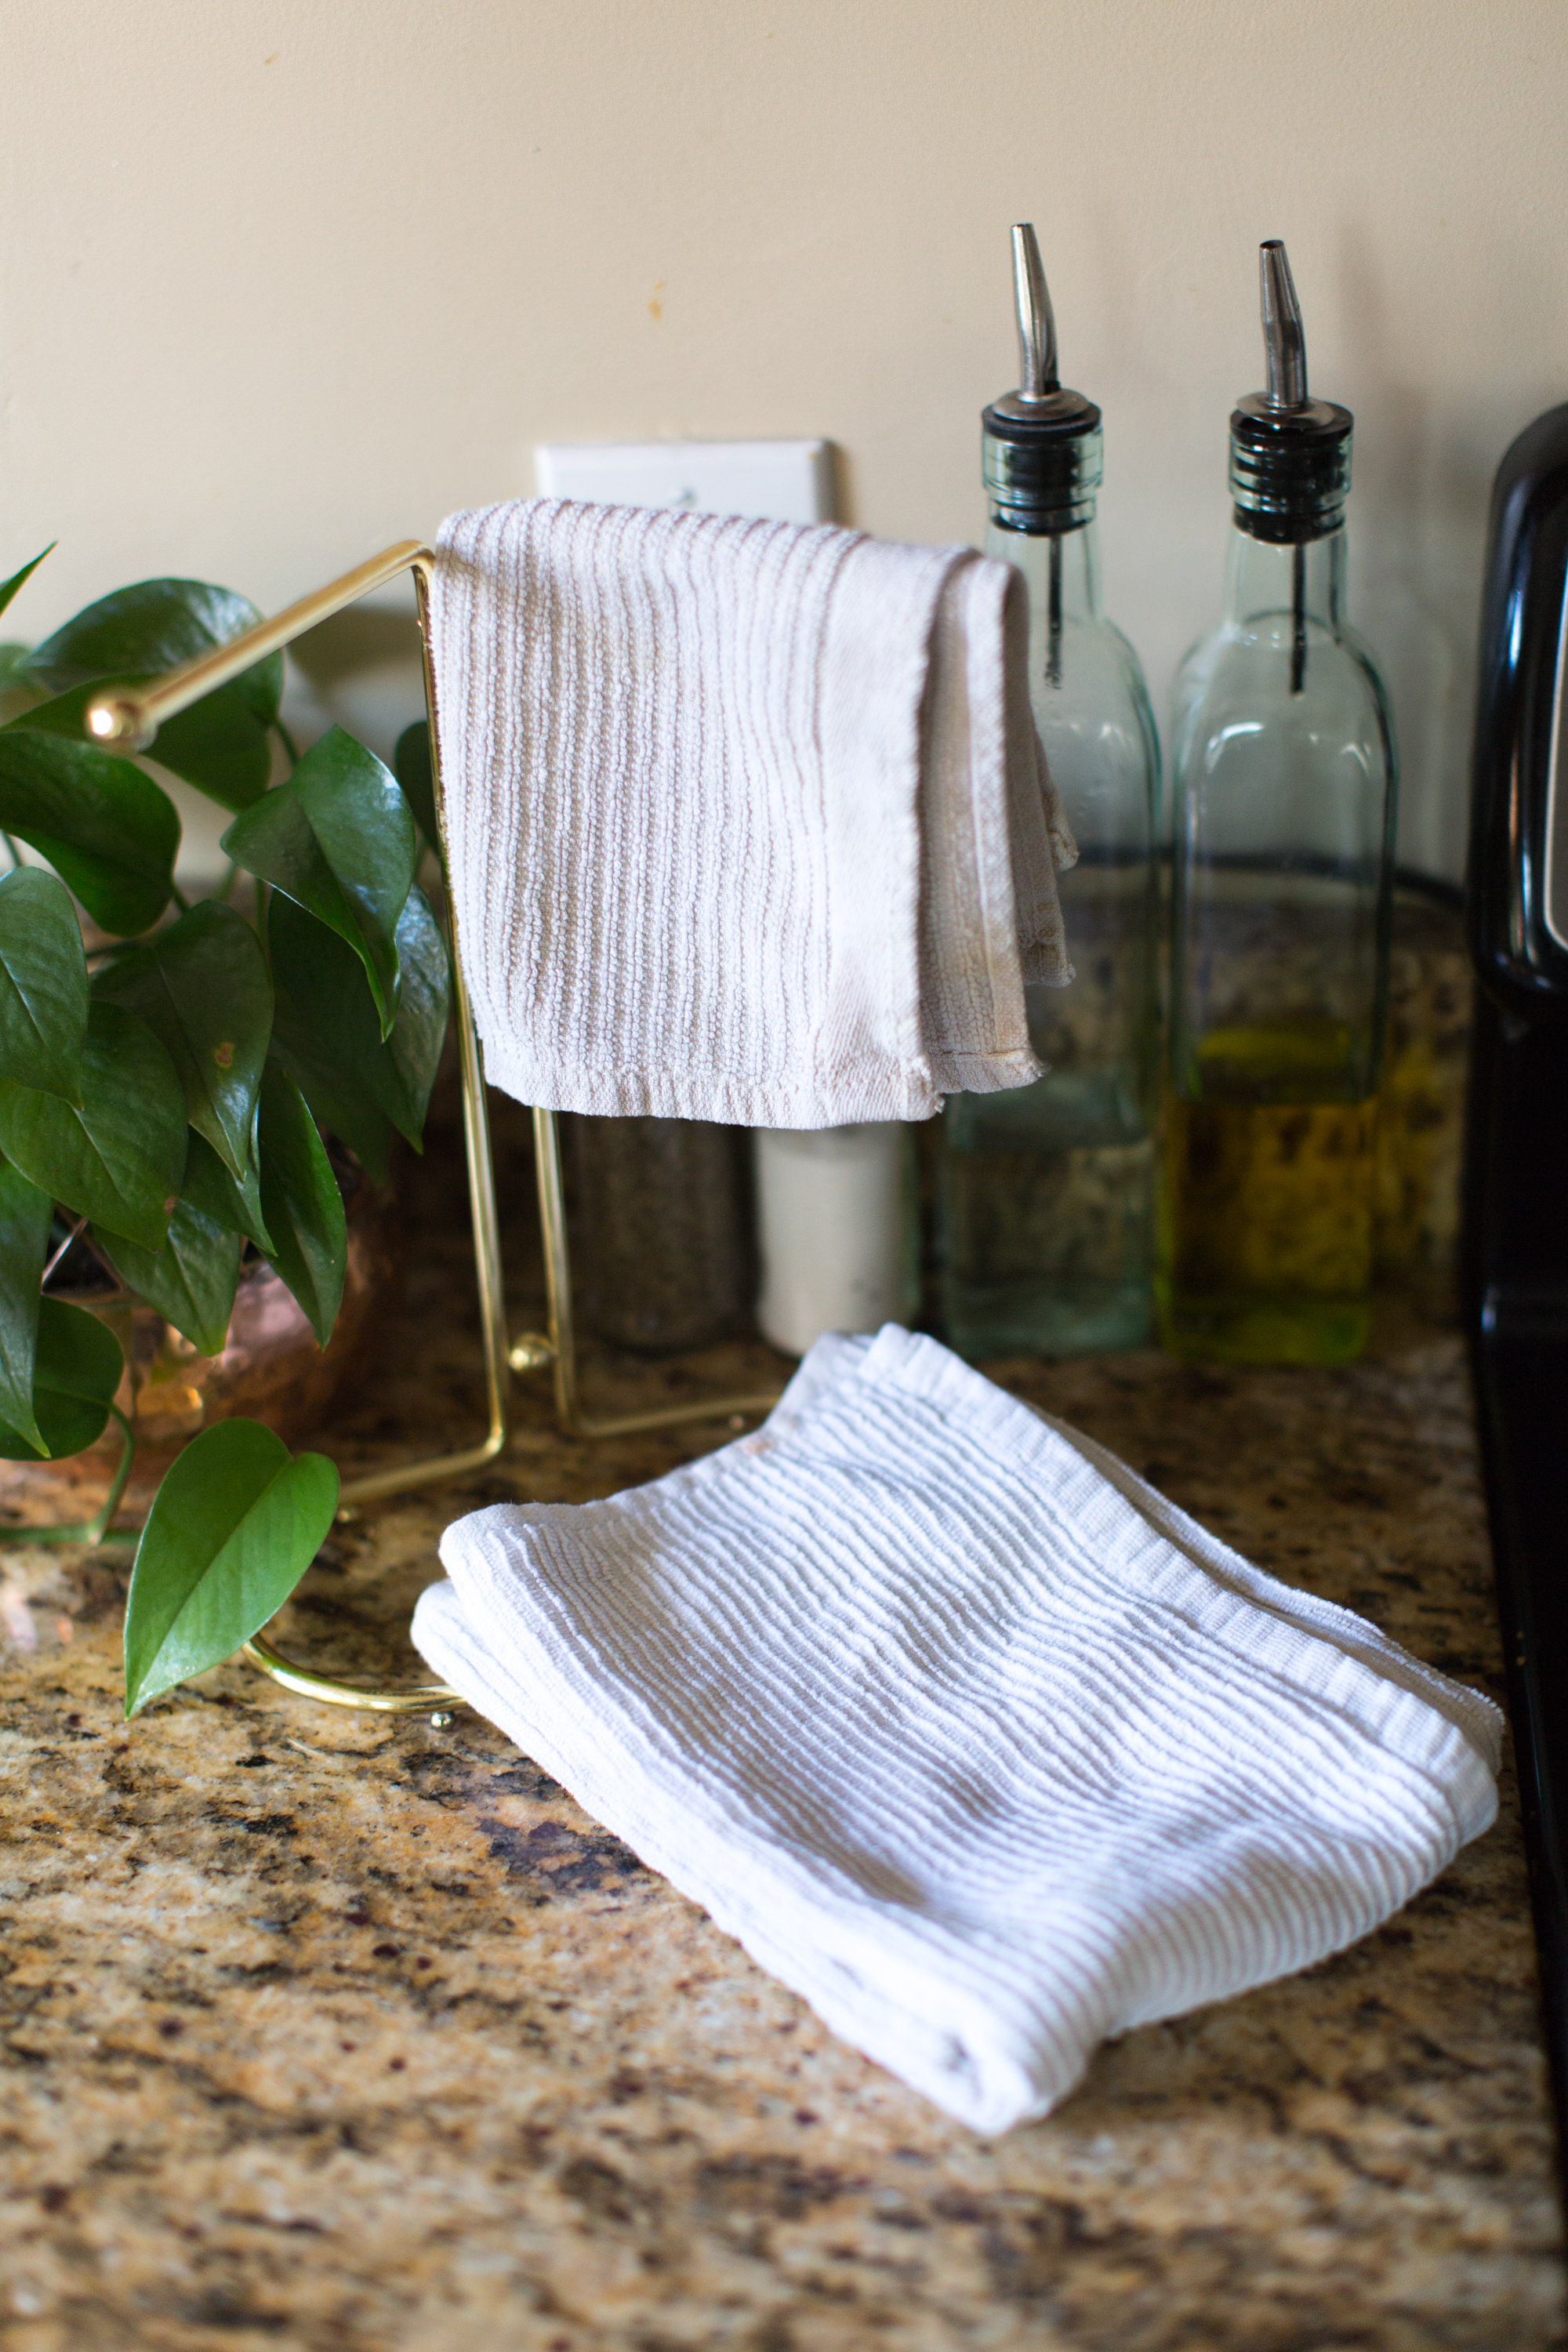 Drying reusable towels